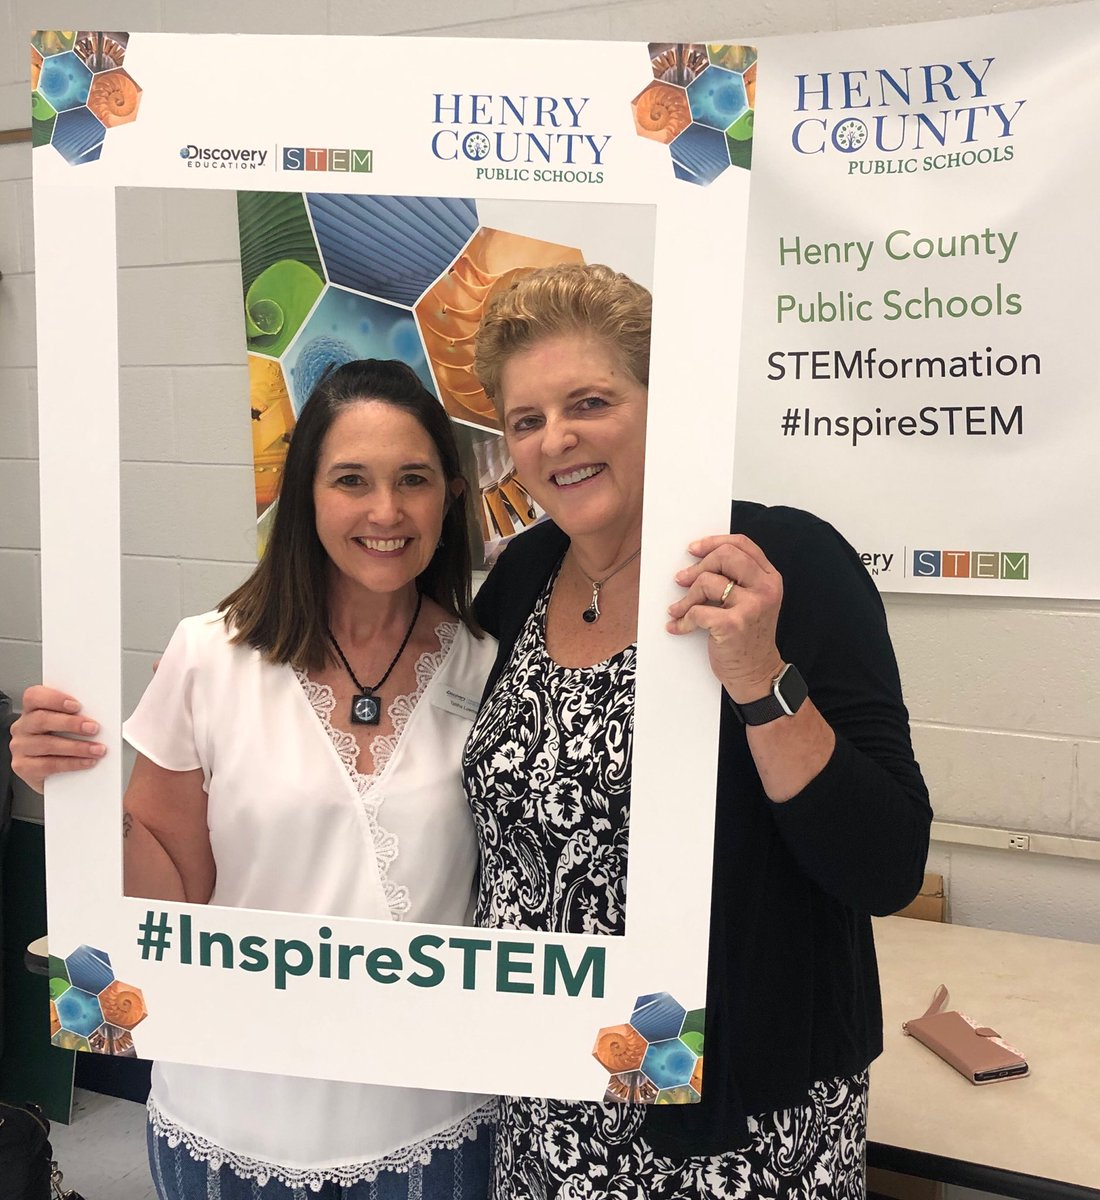 Getting ready to kick off the Henry County VA STEM Leader Retreat with Talitha Lowman ⁦@Talowman⁩ #DESTEM<br>http://pic.twitter.com/LO8pSclR8Q